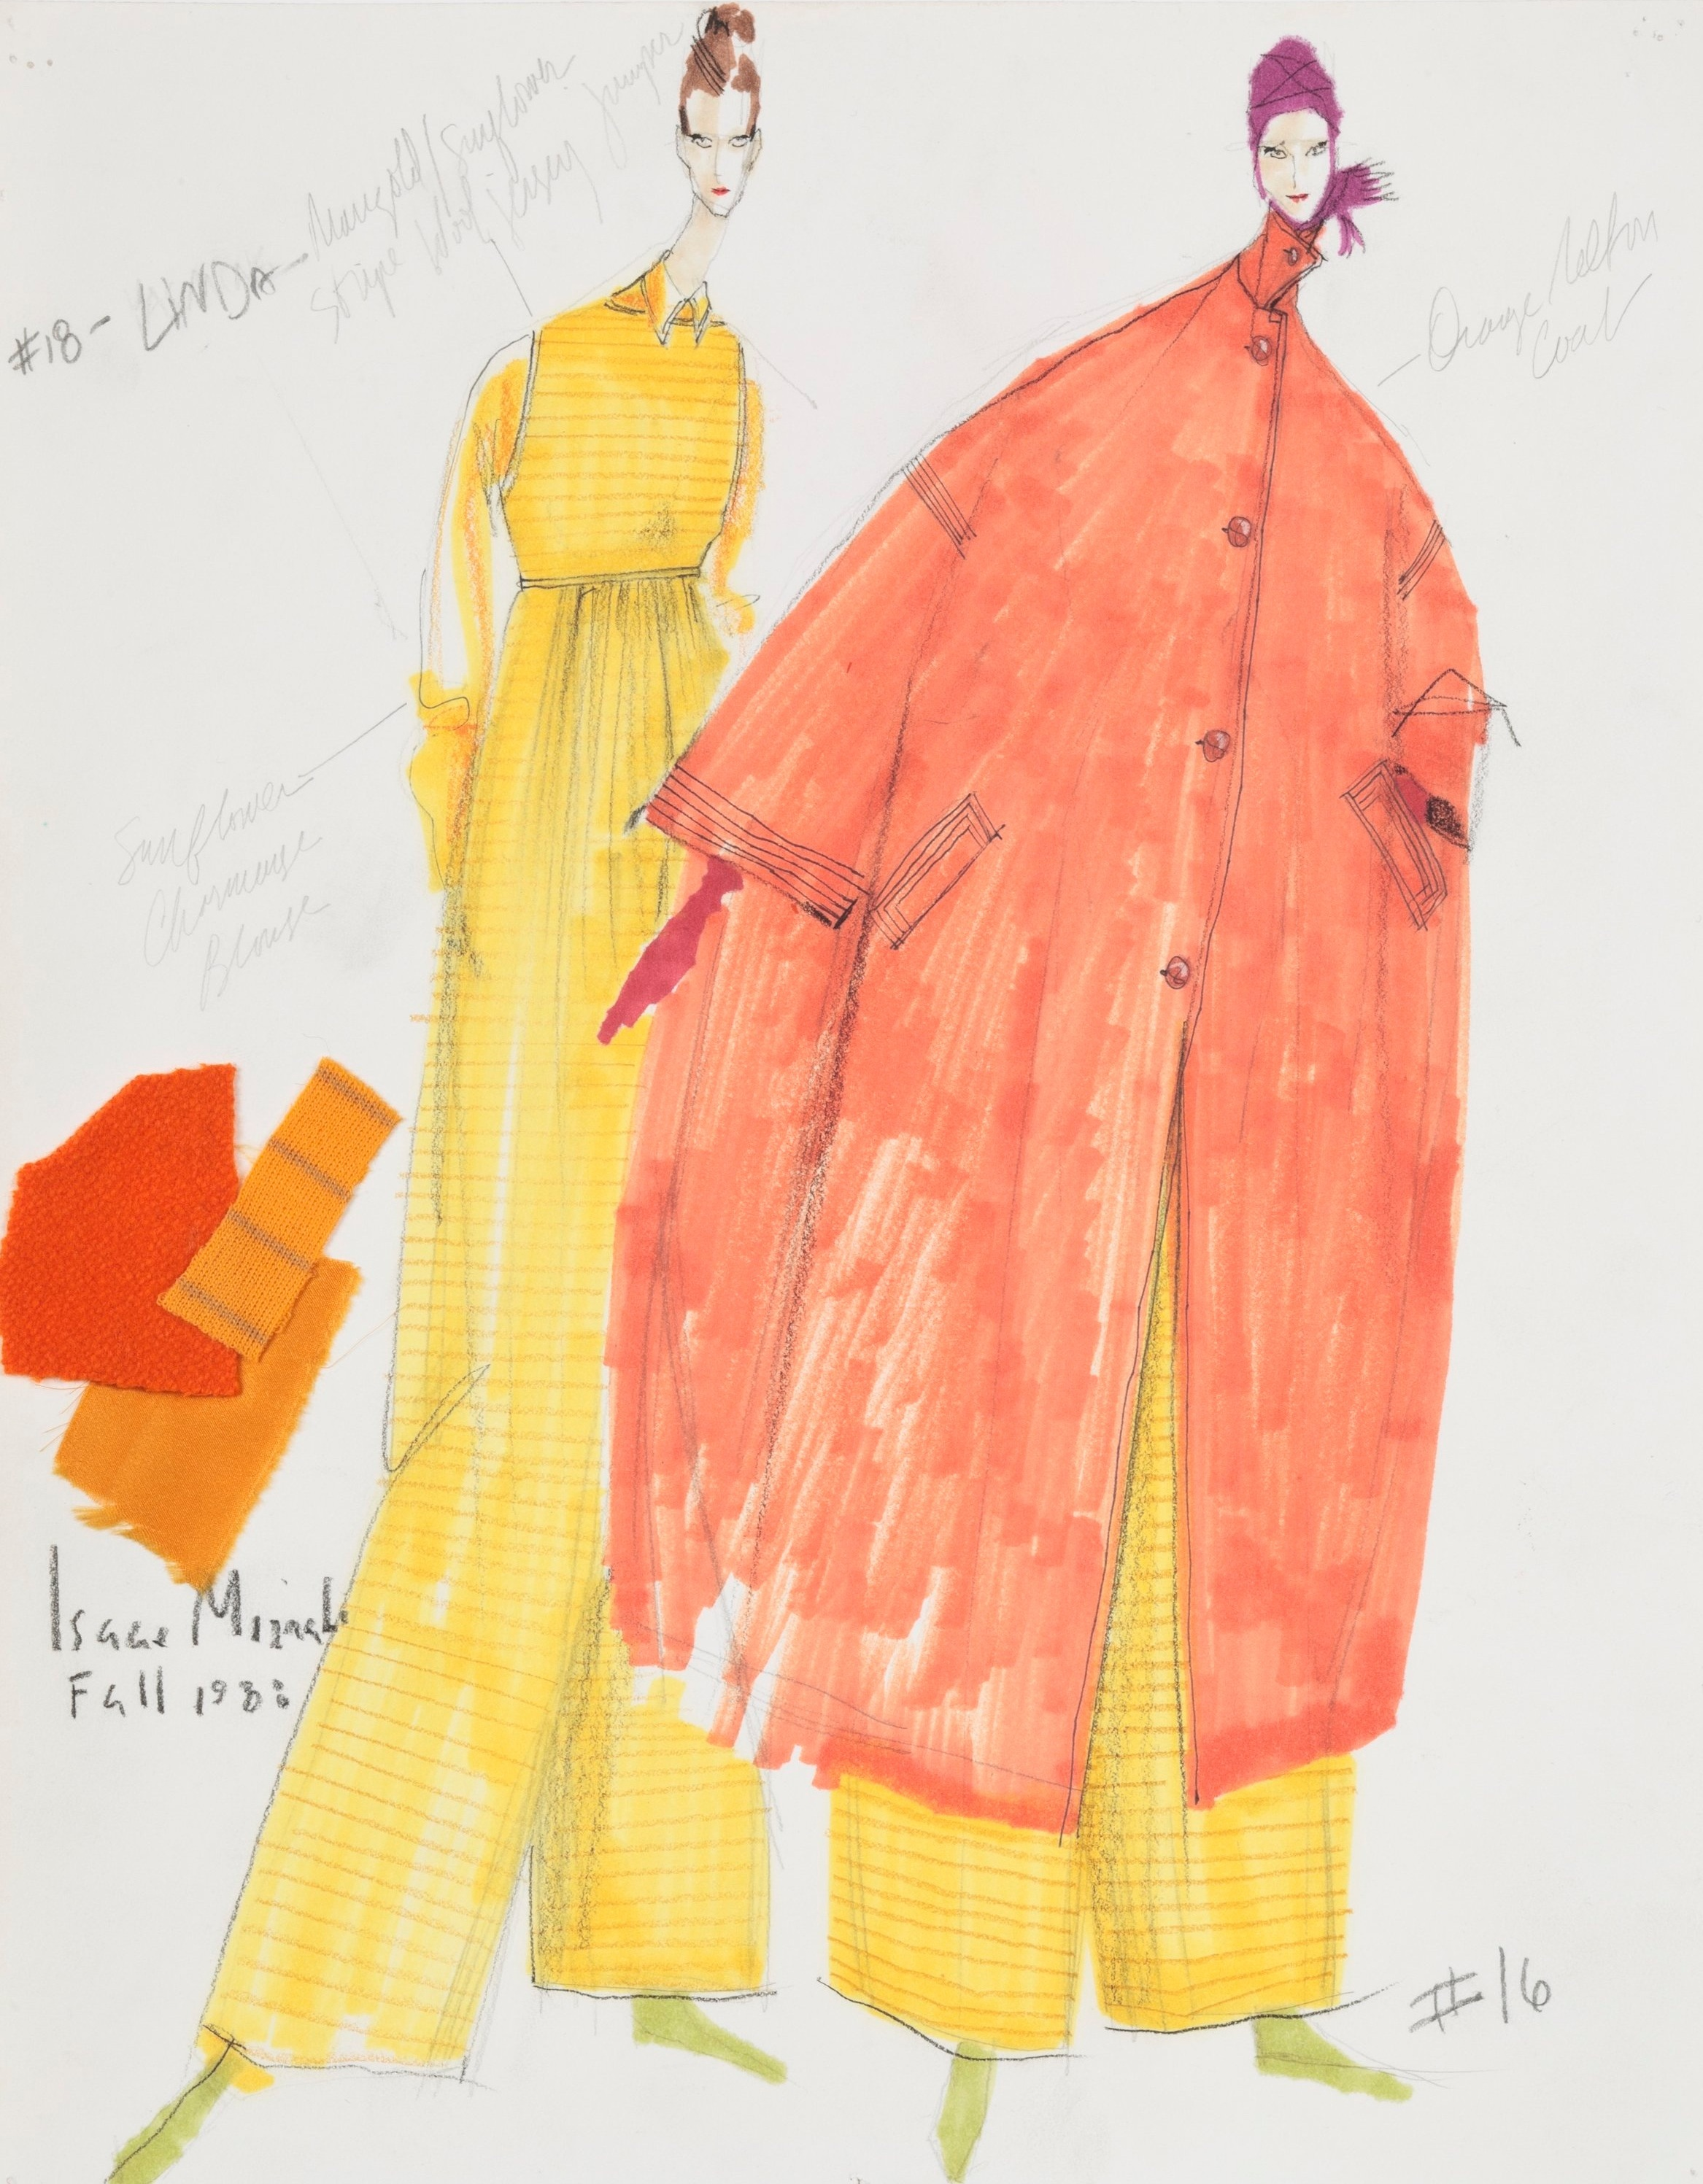 Sketch for Orange-Orange Coat and Jumpsuit, Fall 1988 | Photo by Jason Frank Rothenberg